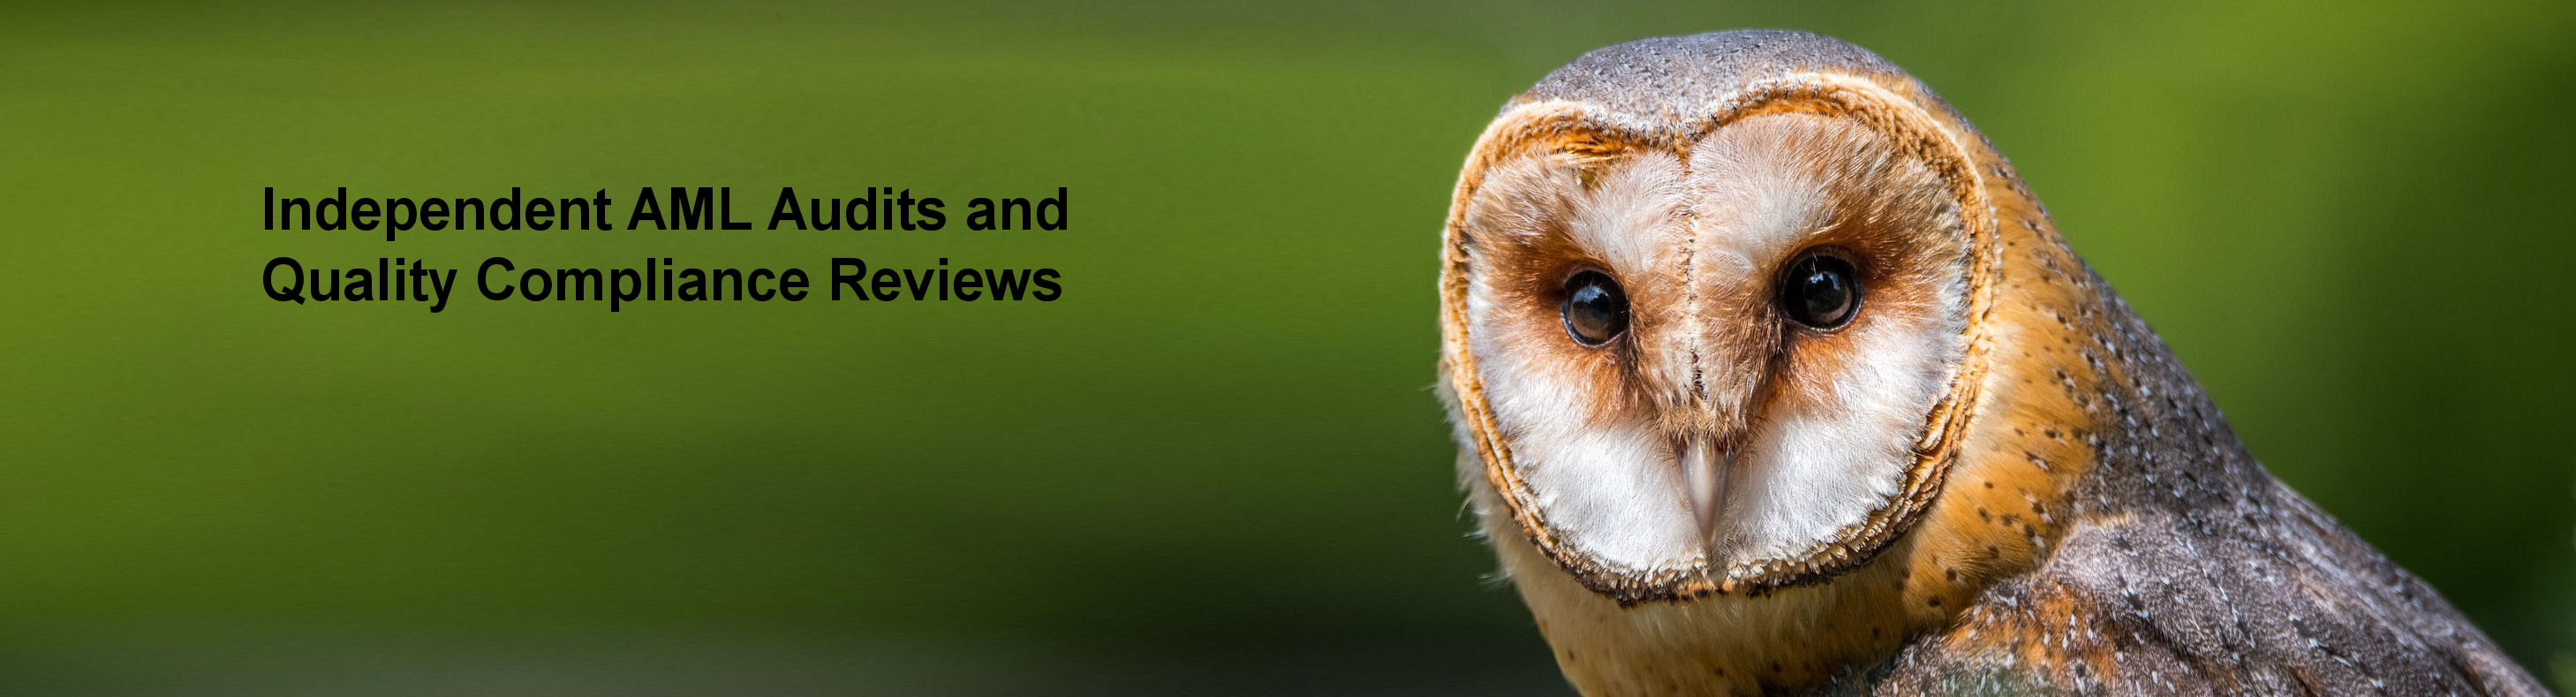 Slide 3: Independent AML Audits and Quality Compliance Reviews - An owl stares out of the screen